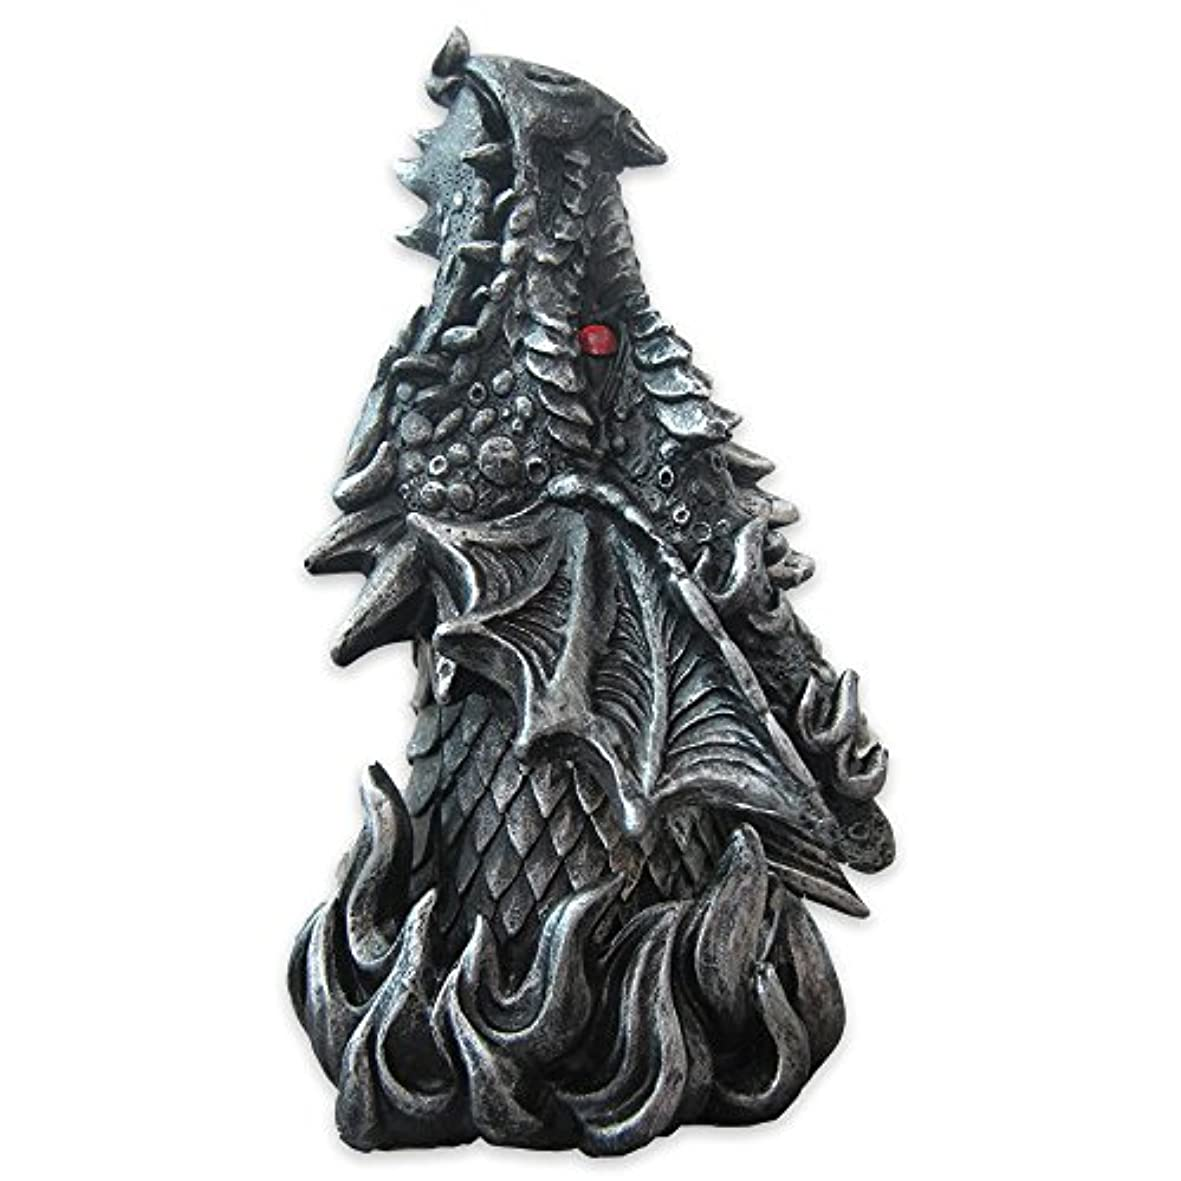 Dragon Figure Cone Incense Burner Fiery Eyes - Gothic Smoke Breathing Decor